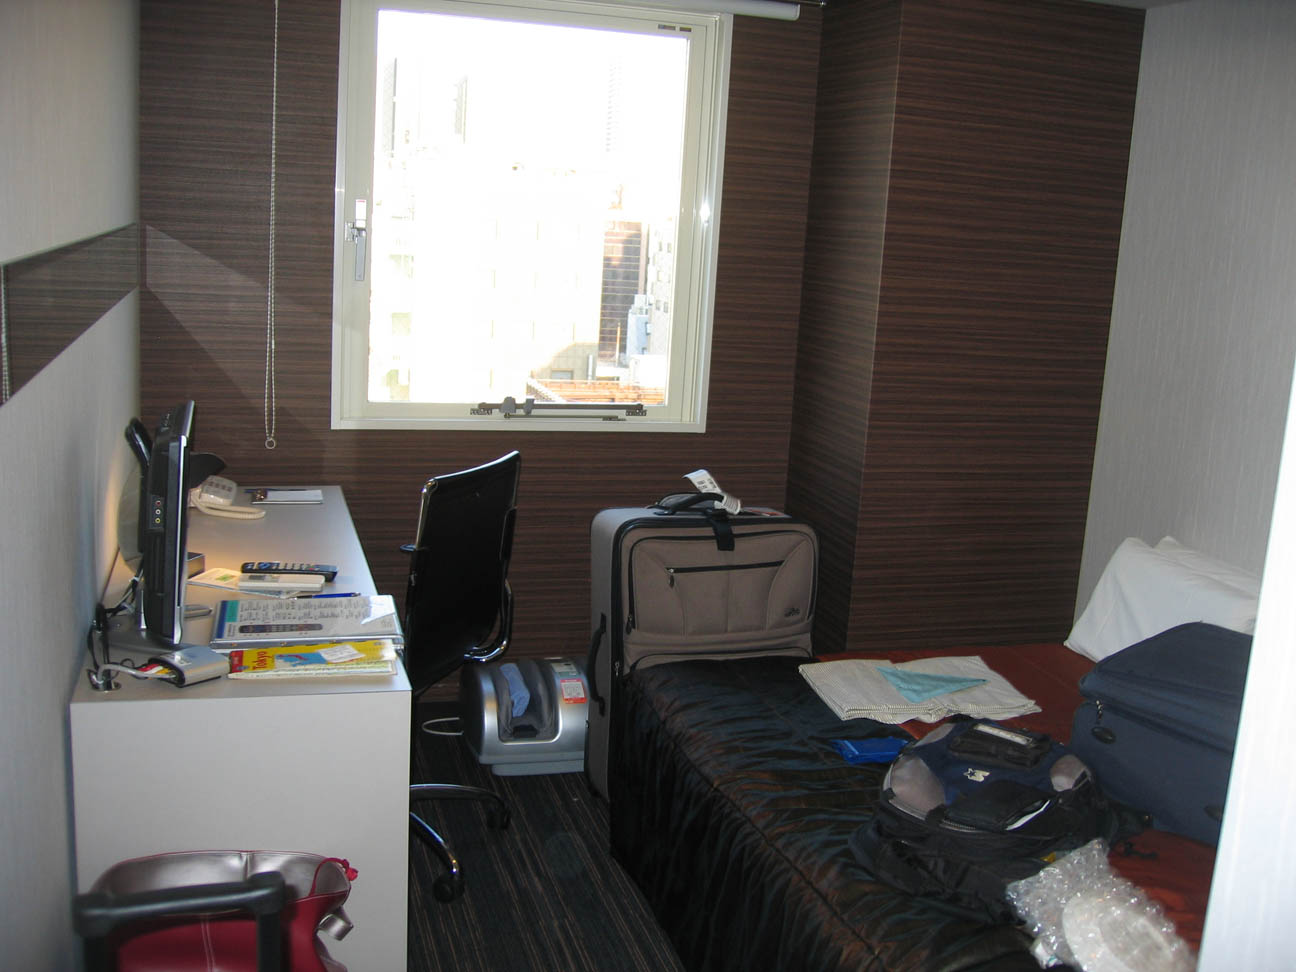 Josiah 39 s japan travelogue part 1 august 2007 for Small lounge suites small rooms